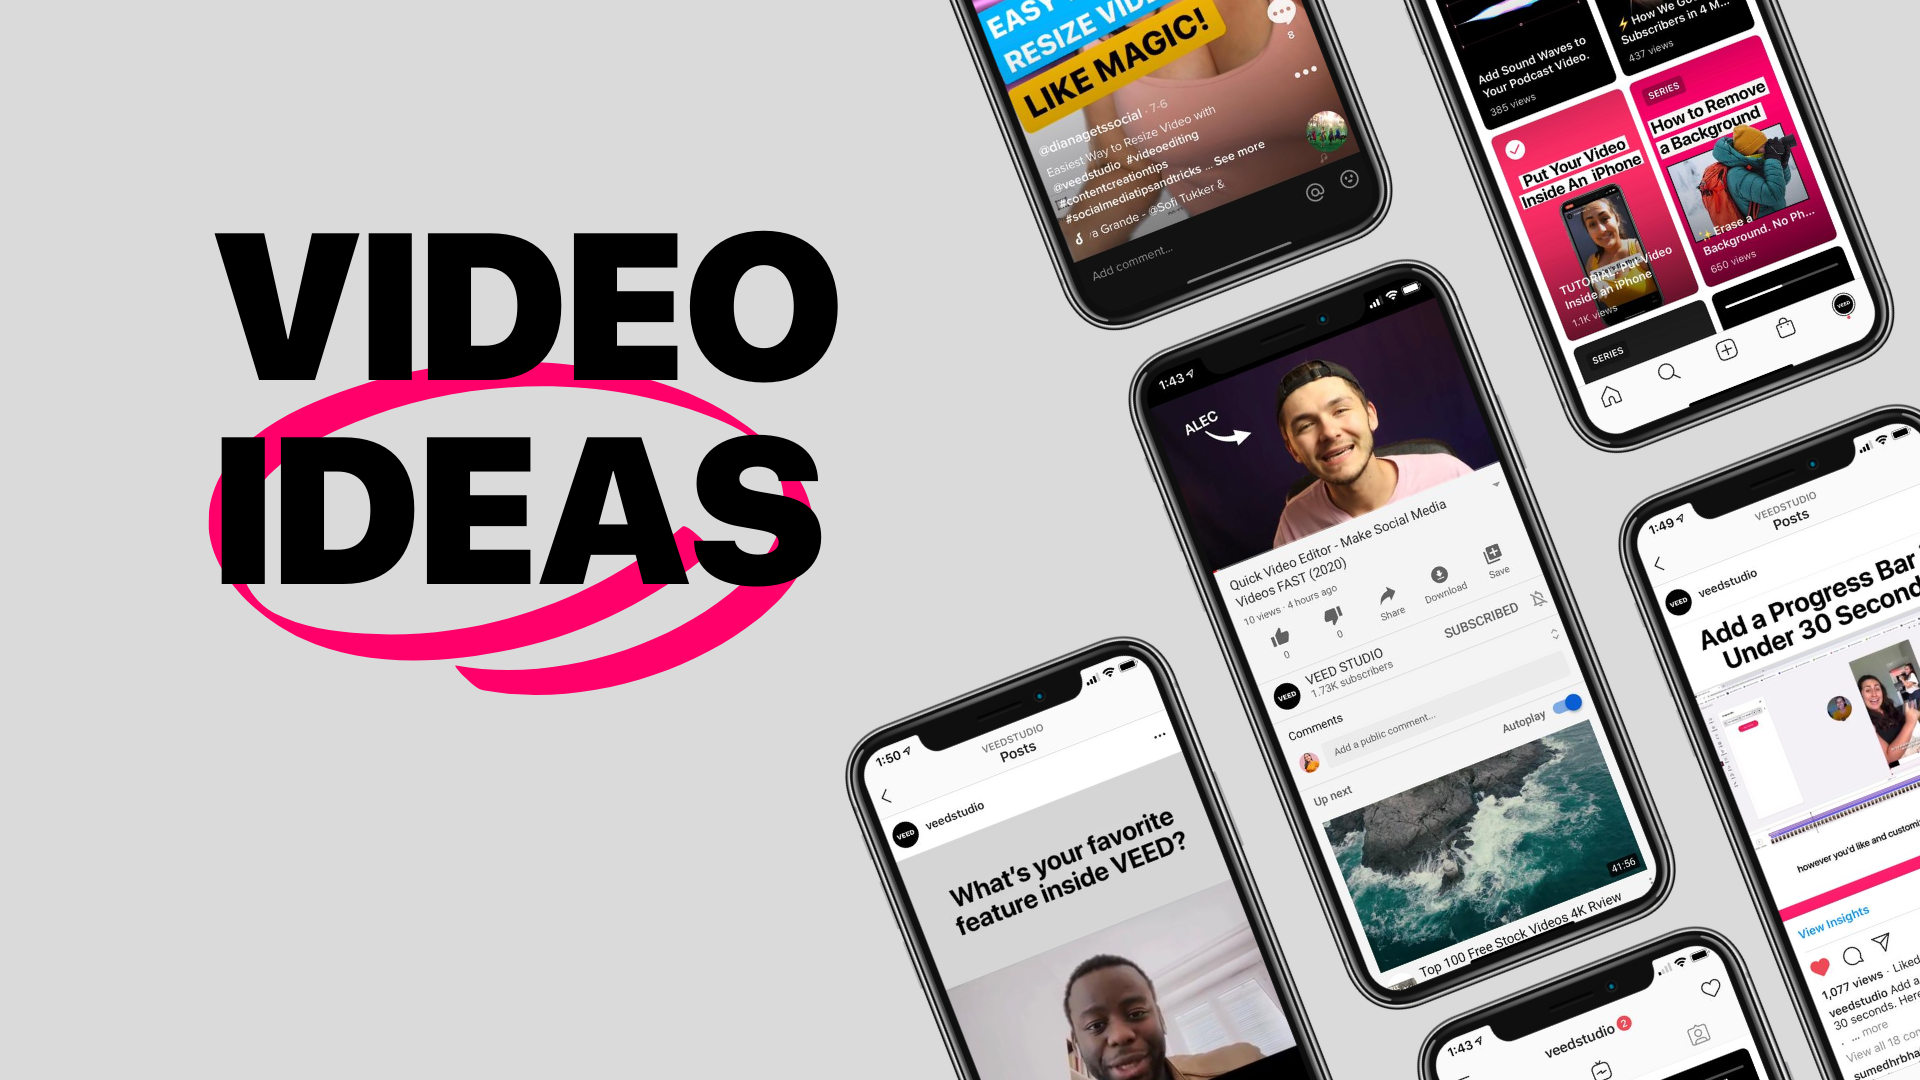 10 Video Project Ideas to Attract an Online Following